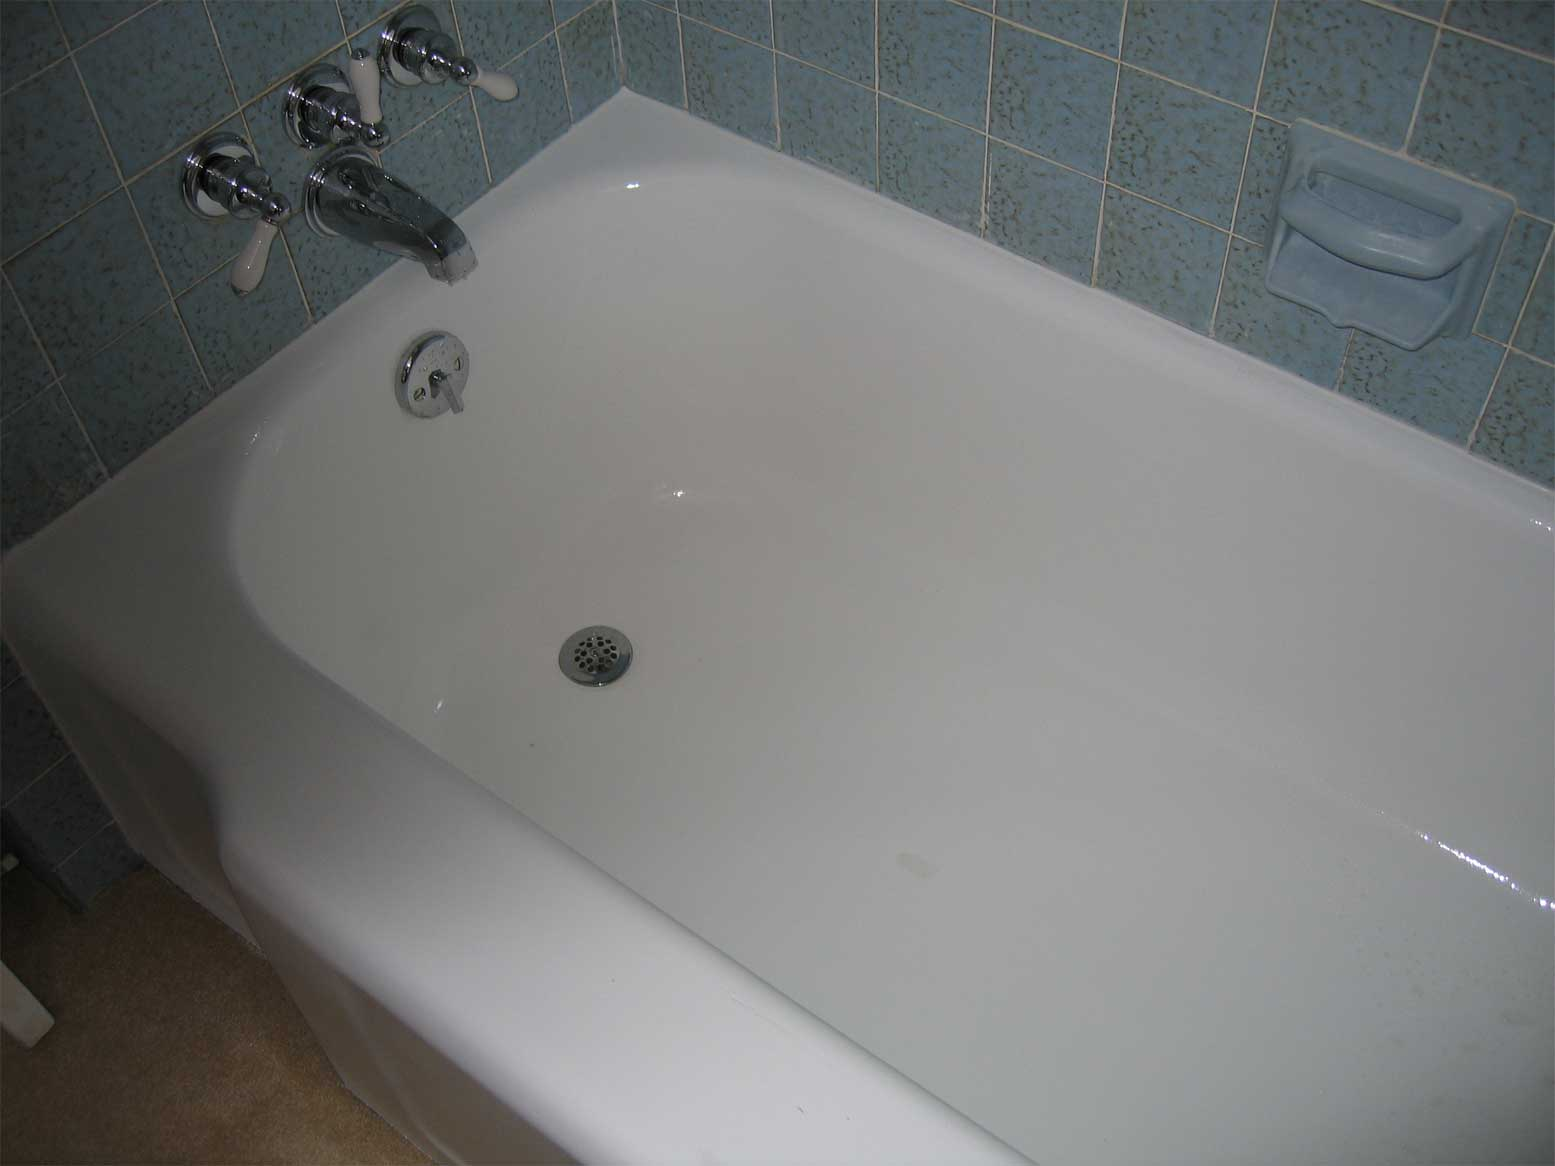 BathTub Restoration ReNu Tile Grout - Bathtub restoration cost